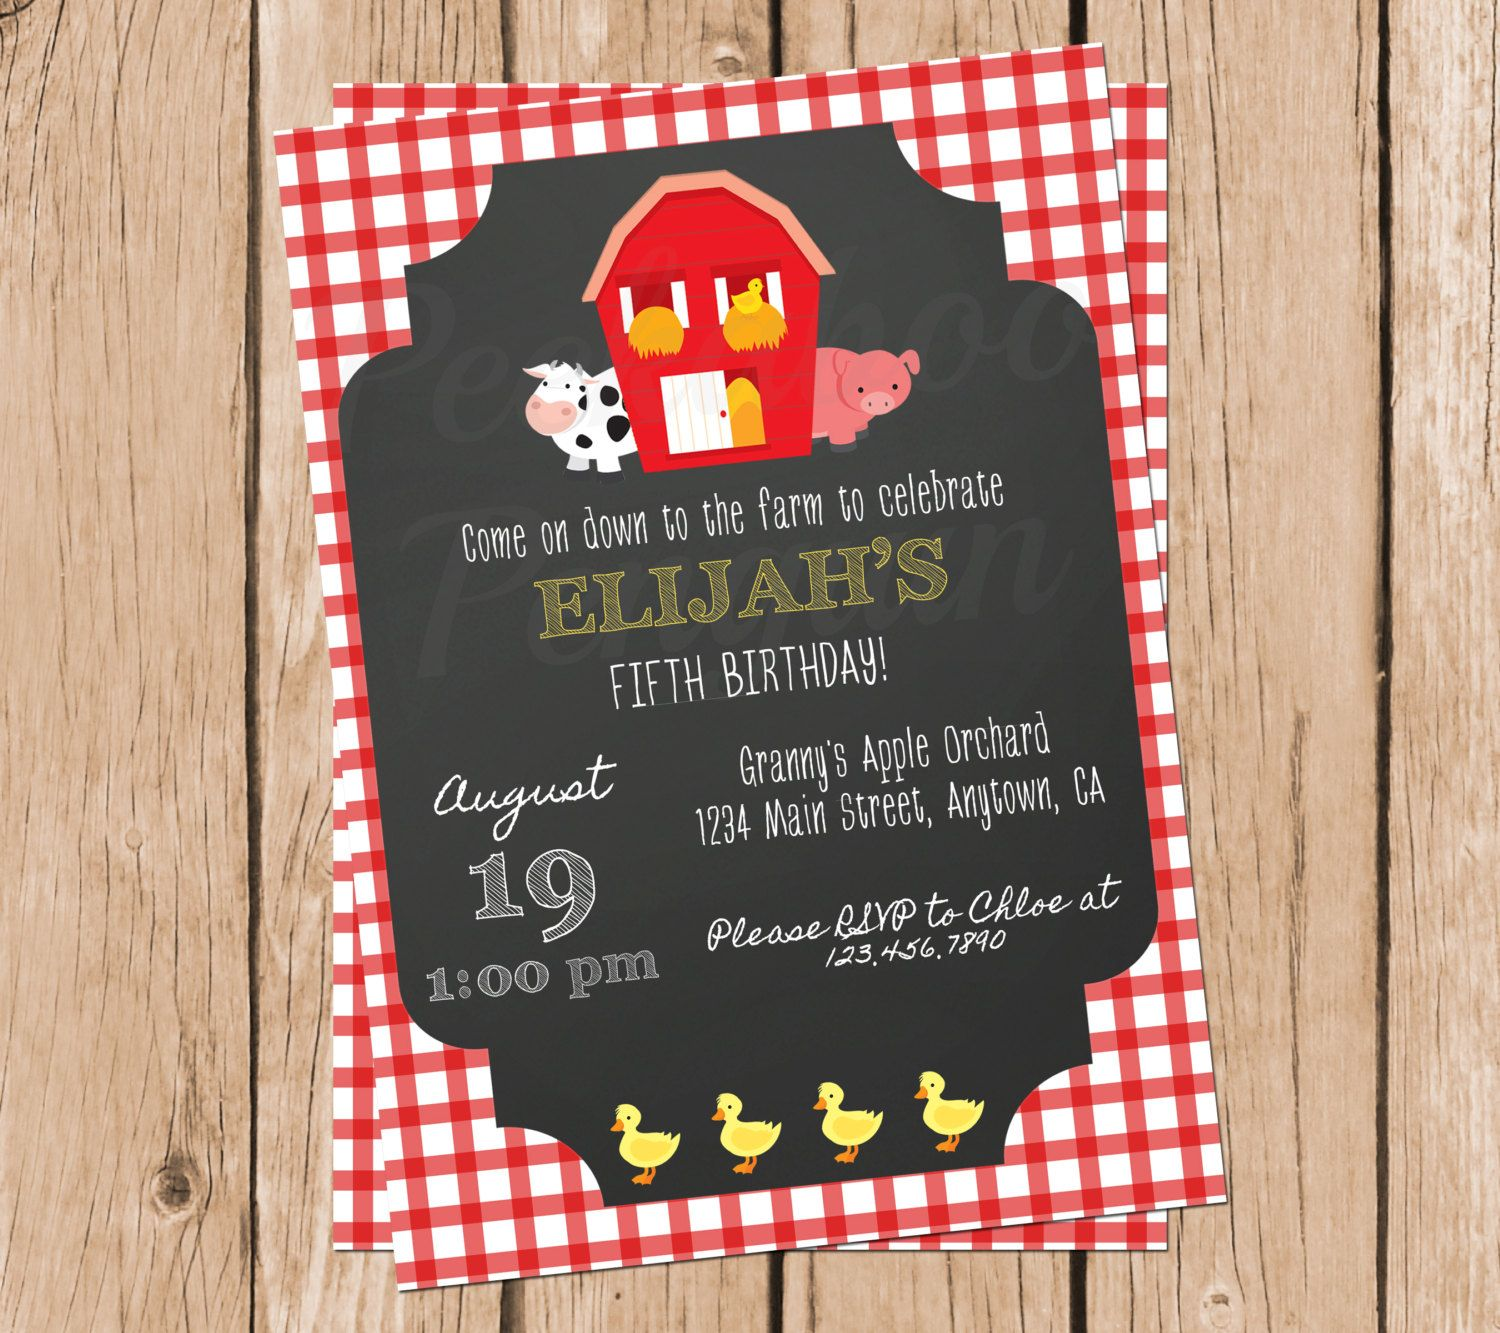 Farm Birthday Invitations, Picnic Invites, Ranch Birthday Party Invites, Printable